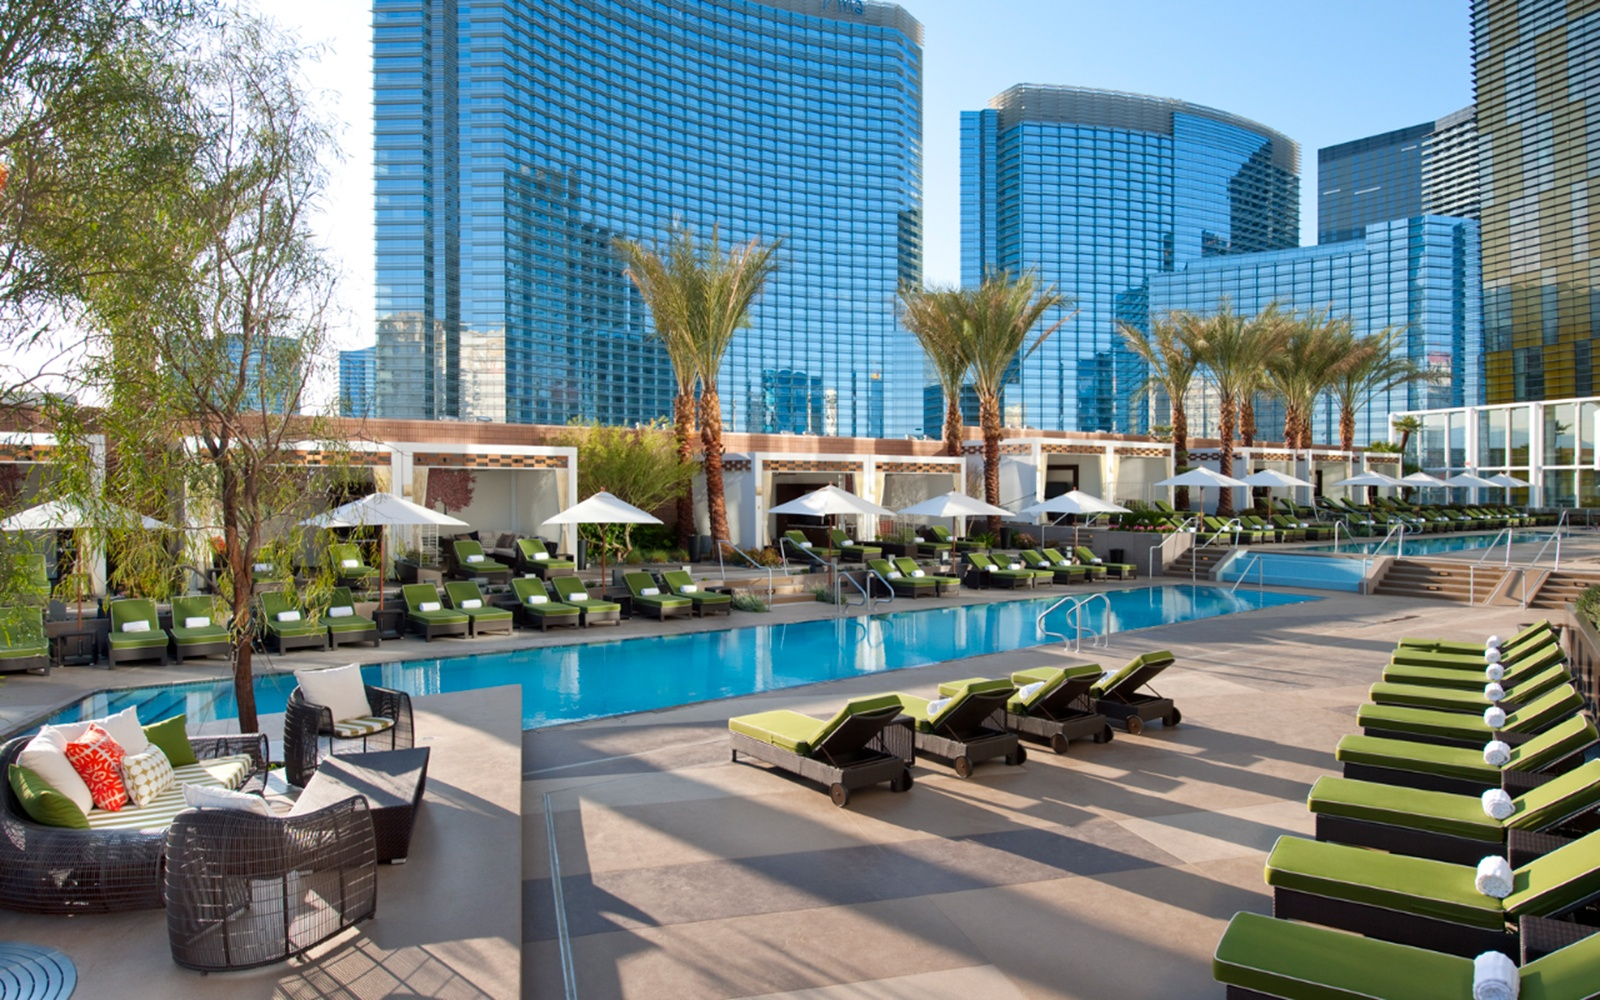 No. 23 Best Pools in Las Vegas